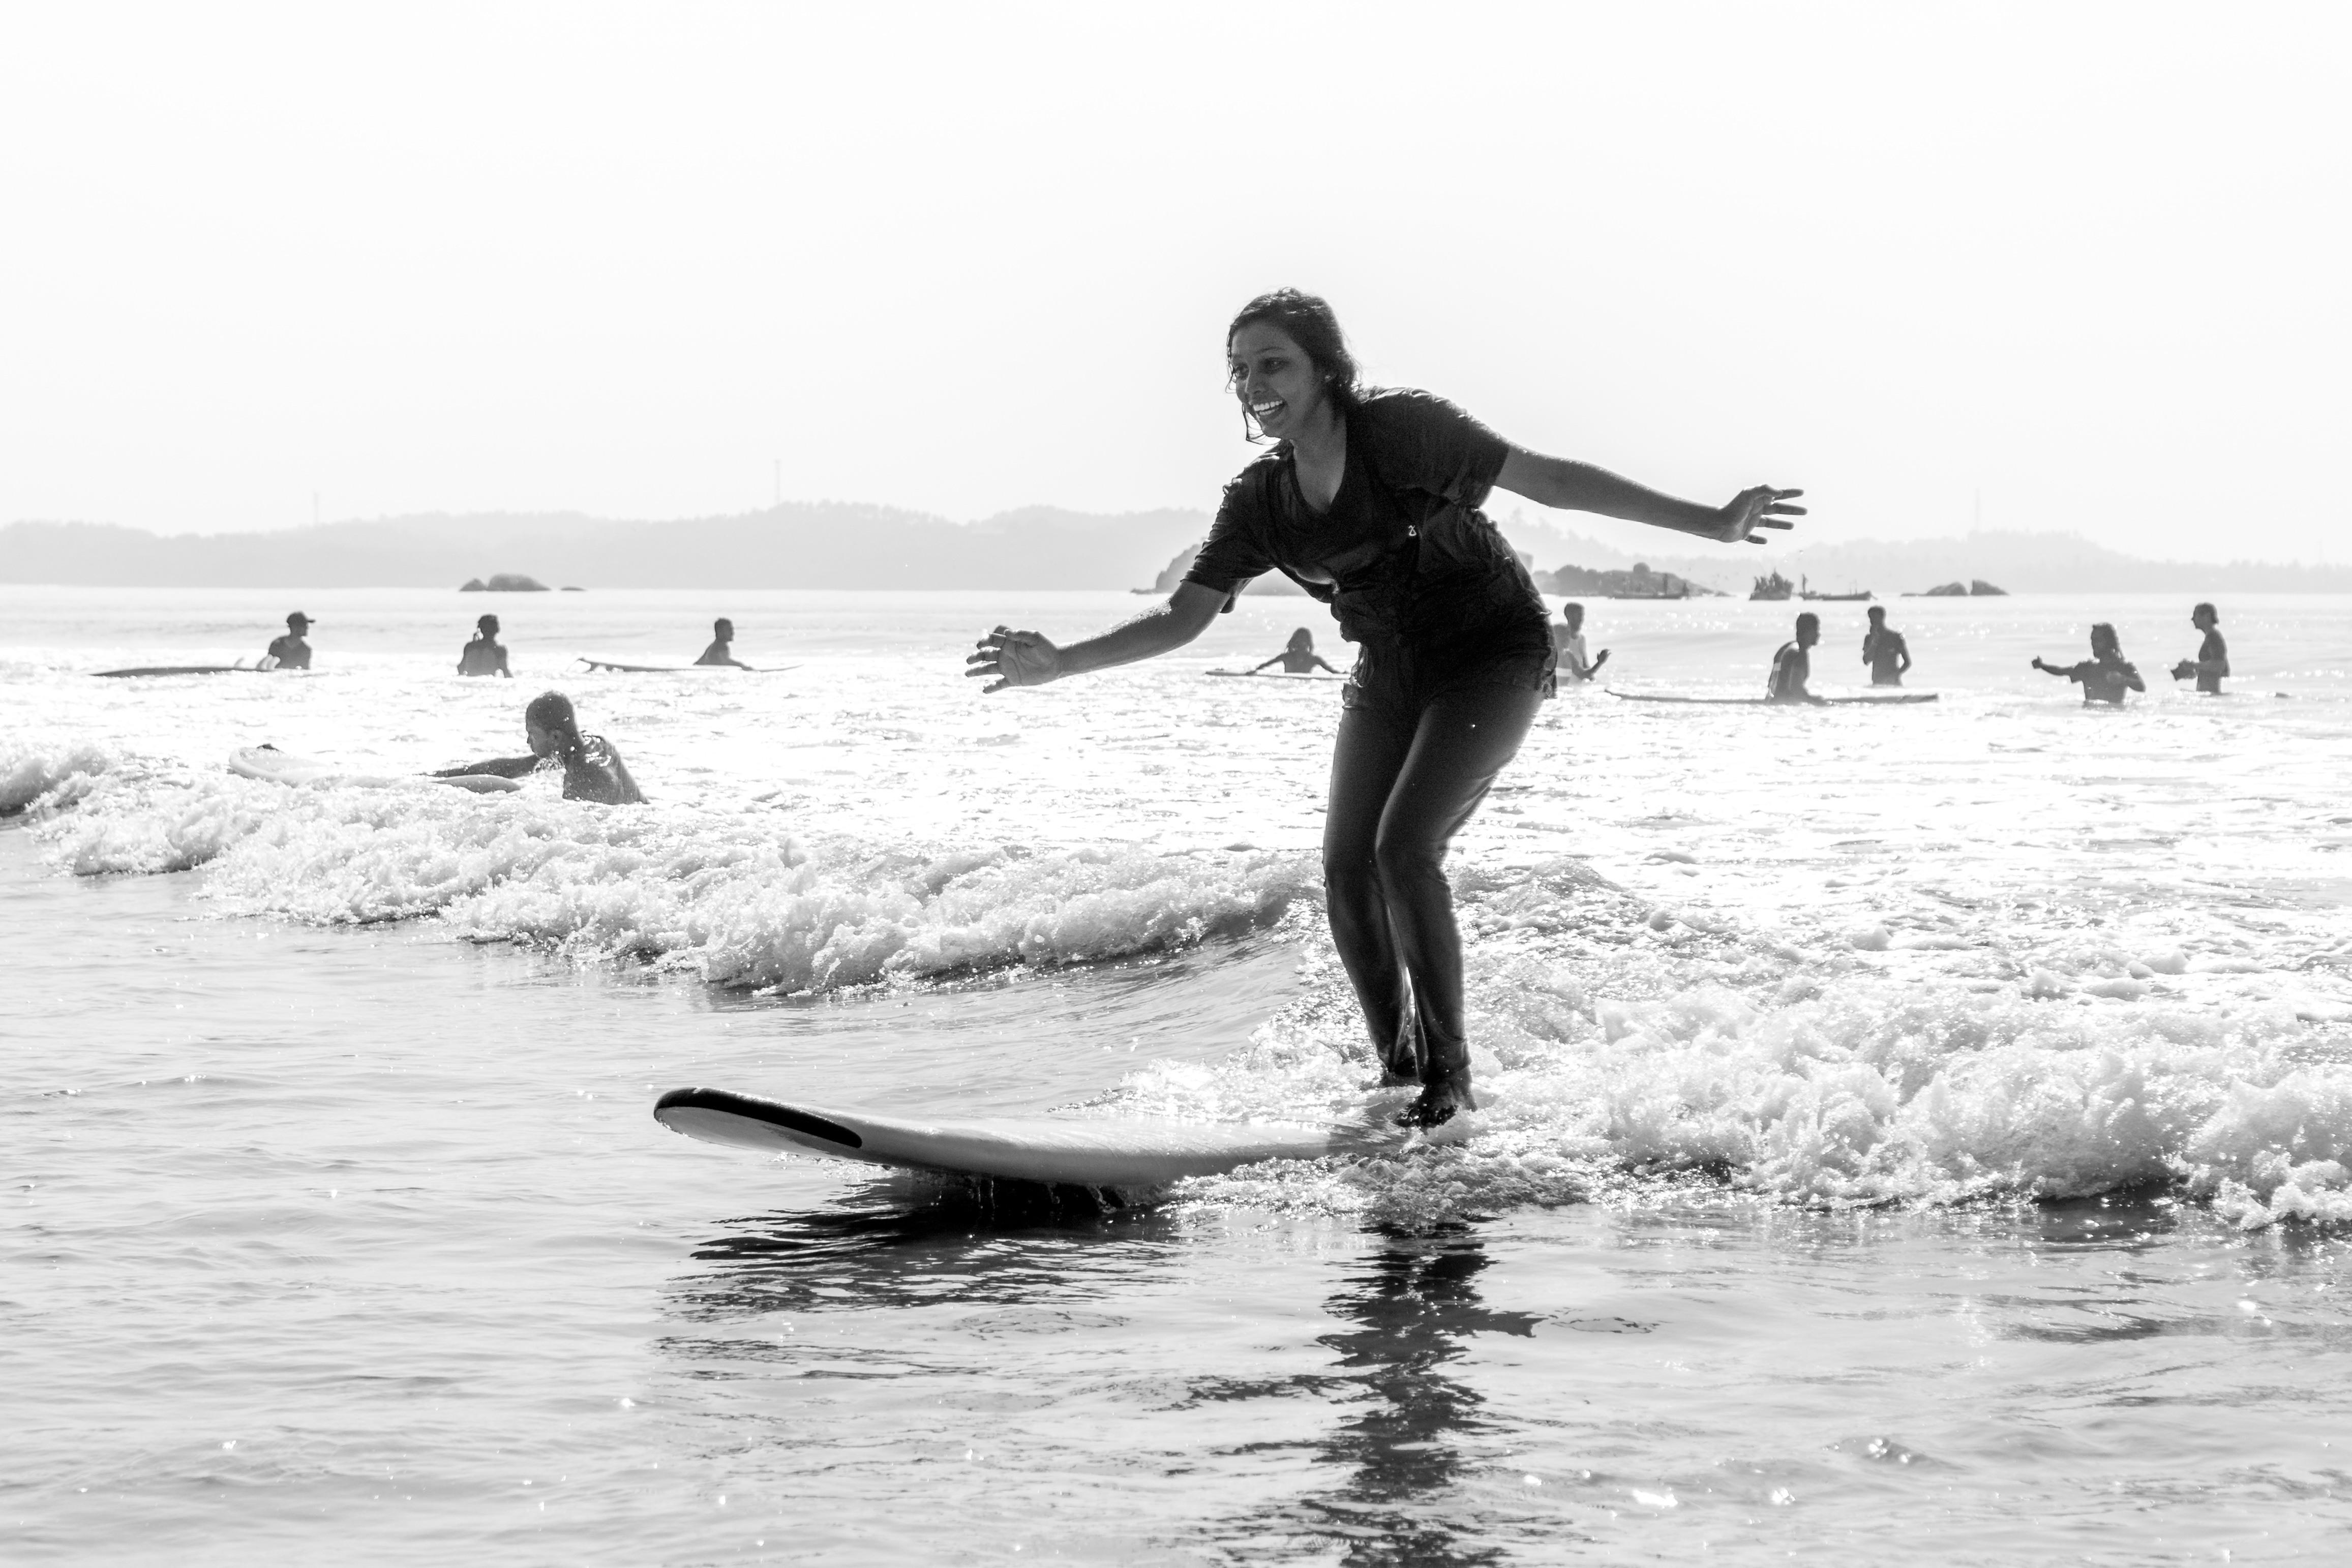 Let your people go surfing!